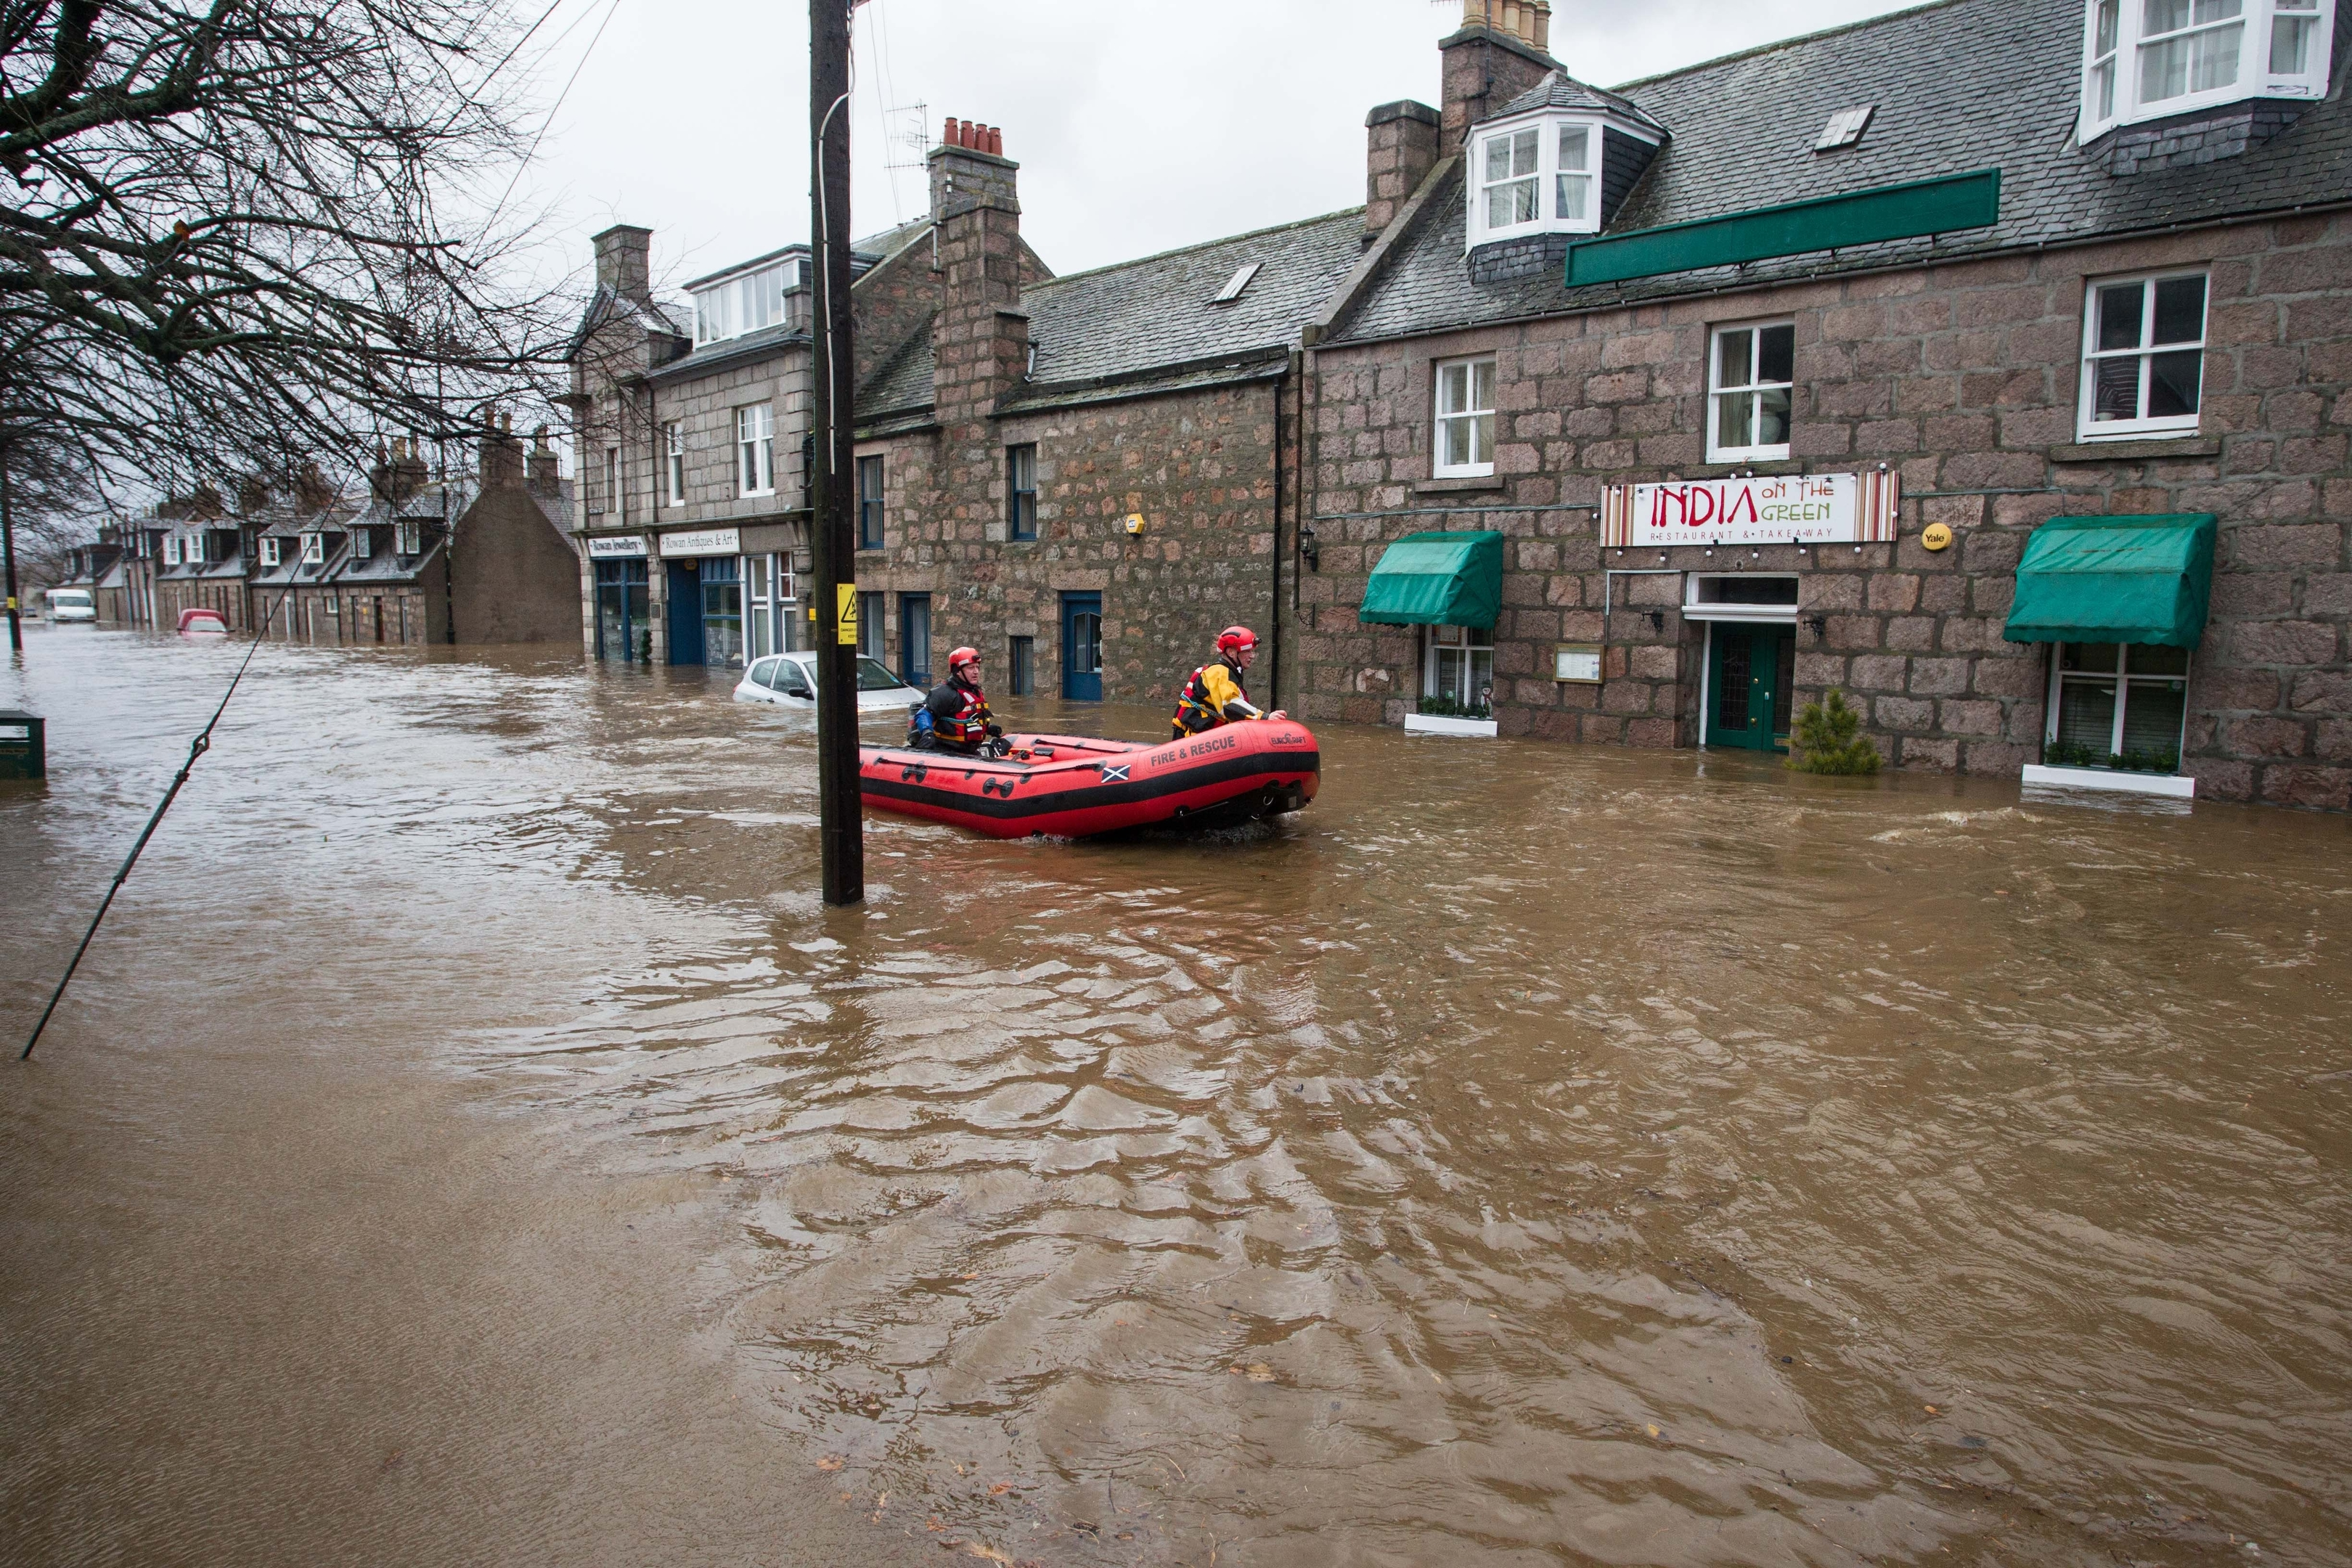 Rescue efforts in Ballater during the floods